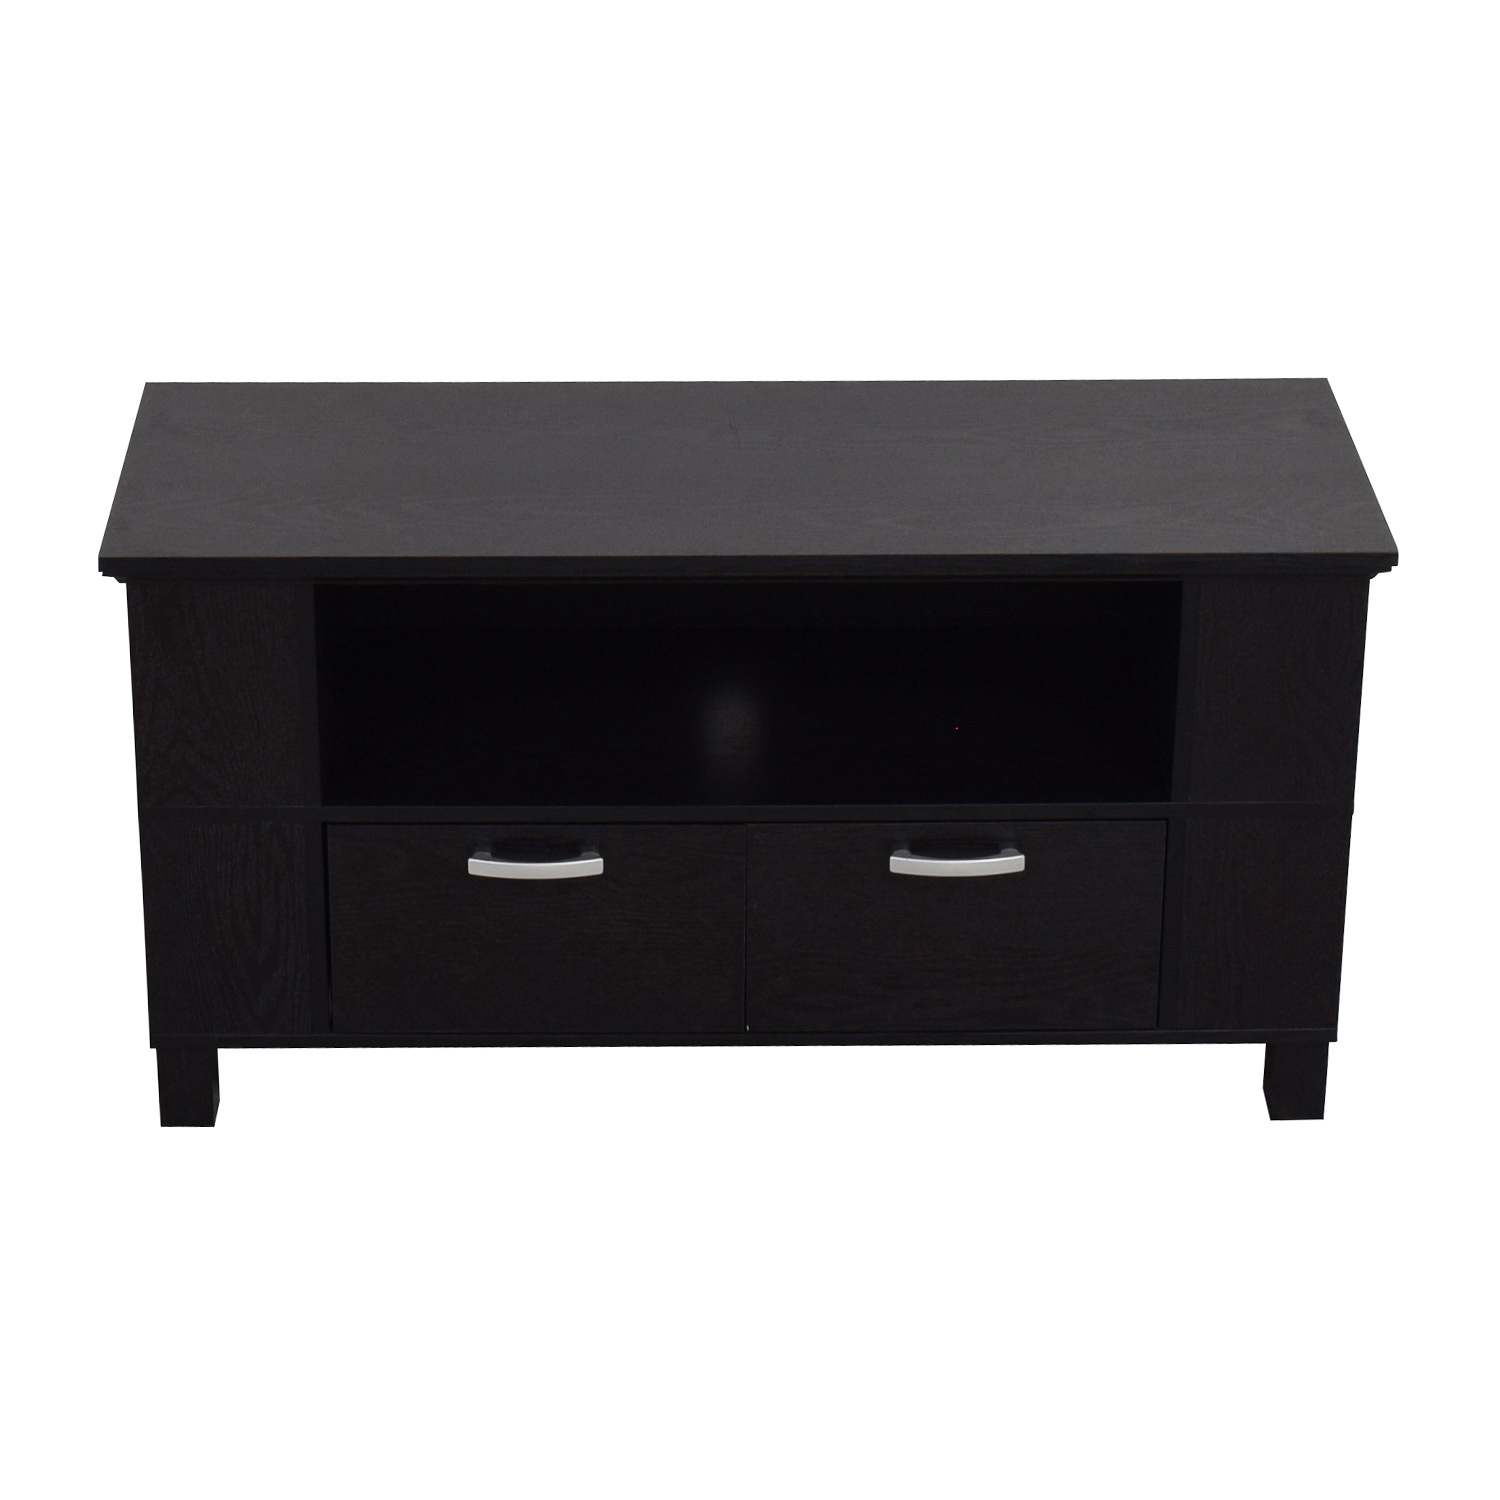 buy Espresso TV Stand with Two Drawers with Chrome Handles